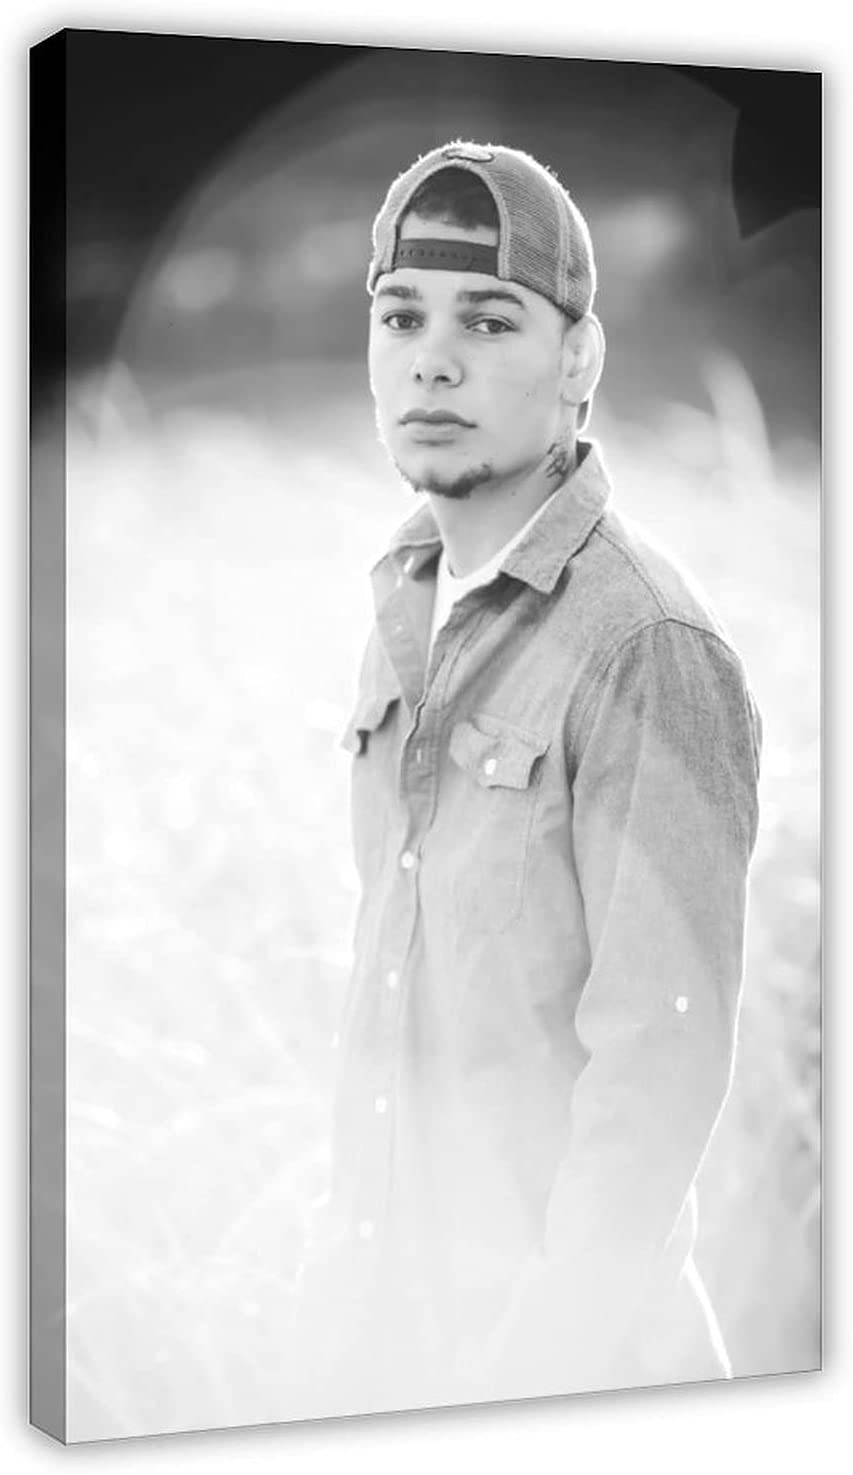 Singer Kane Brown 21 Canvas Poster Print Wall Picture Max 87% OFF Art SALENEW very popular! Decor